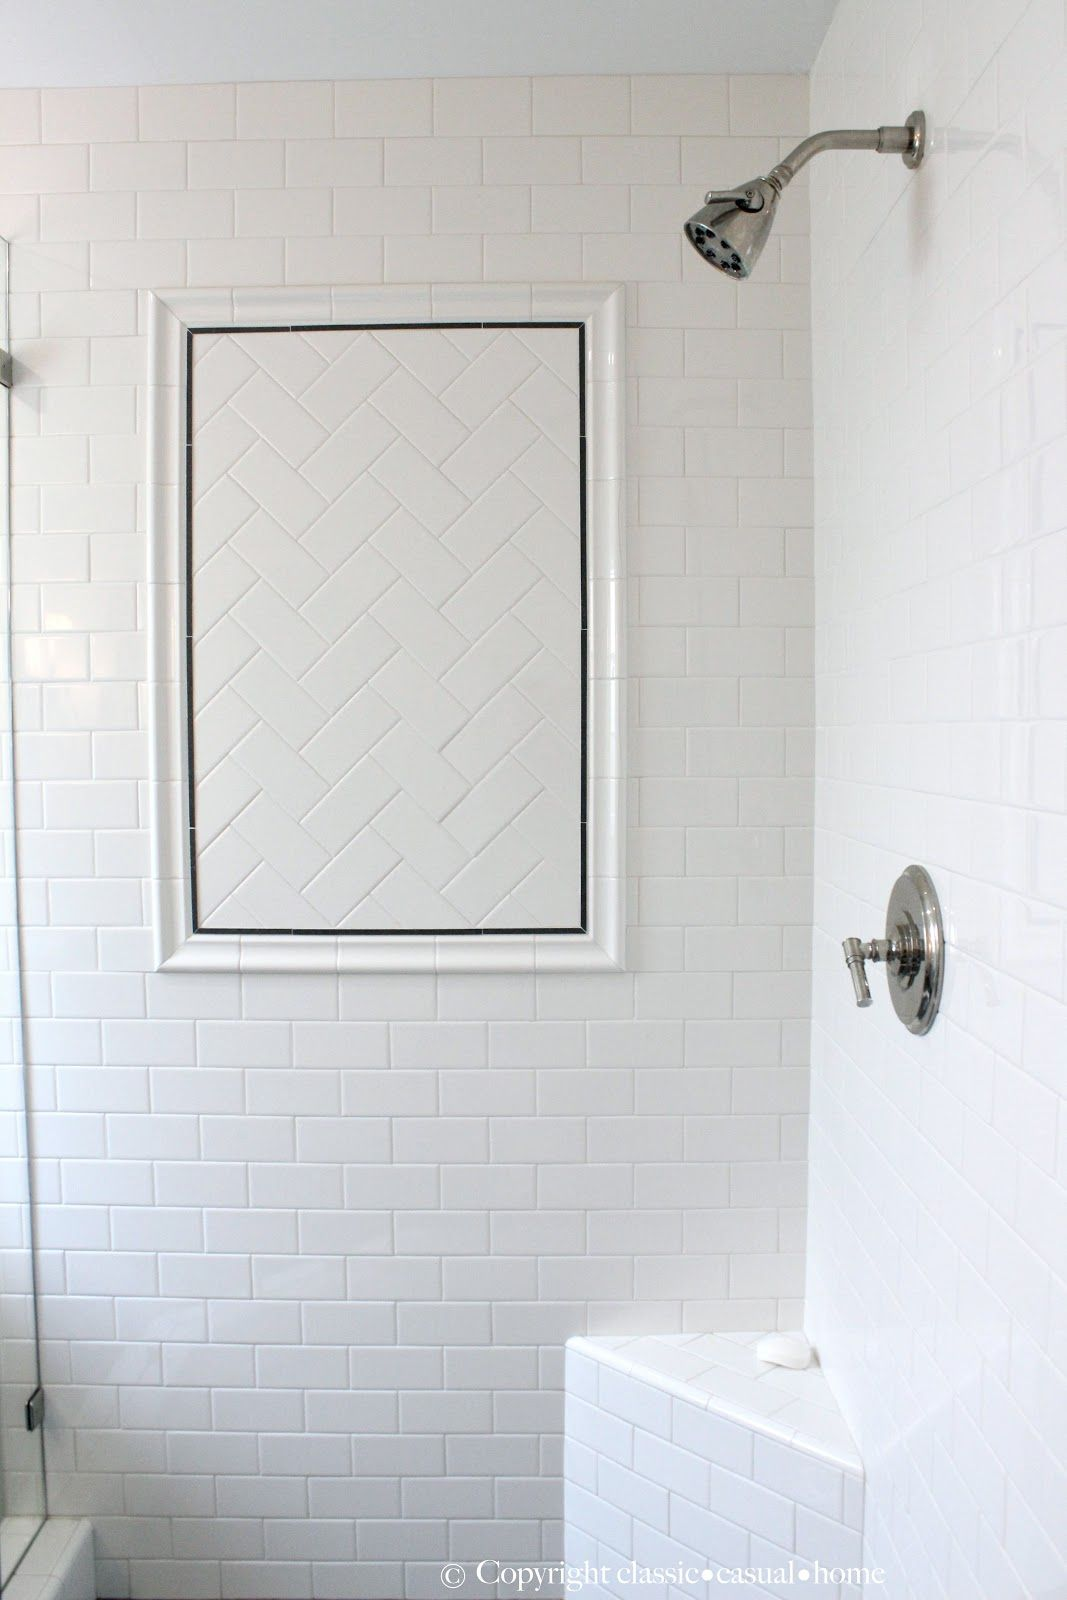 Our Home Tour Classic Casual Home Subway Tiles Bathroom Subway Tile Bathroom Tile Designs